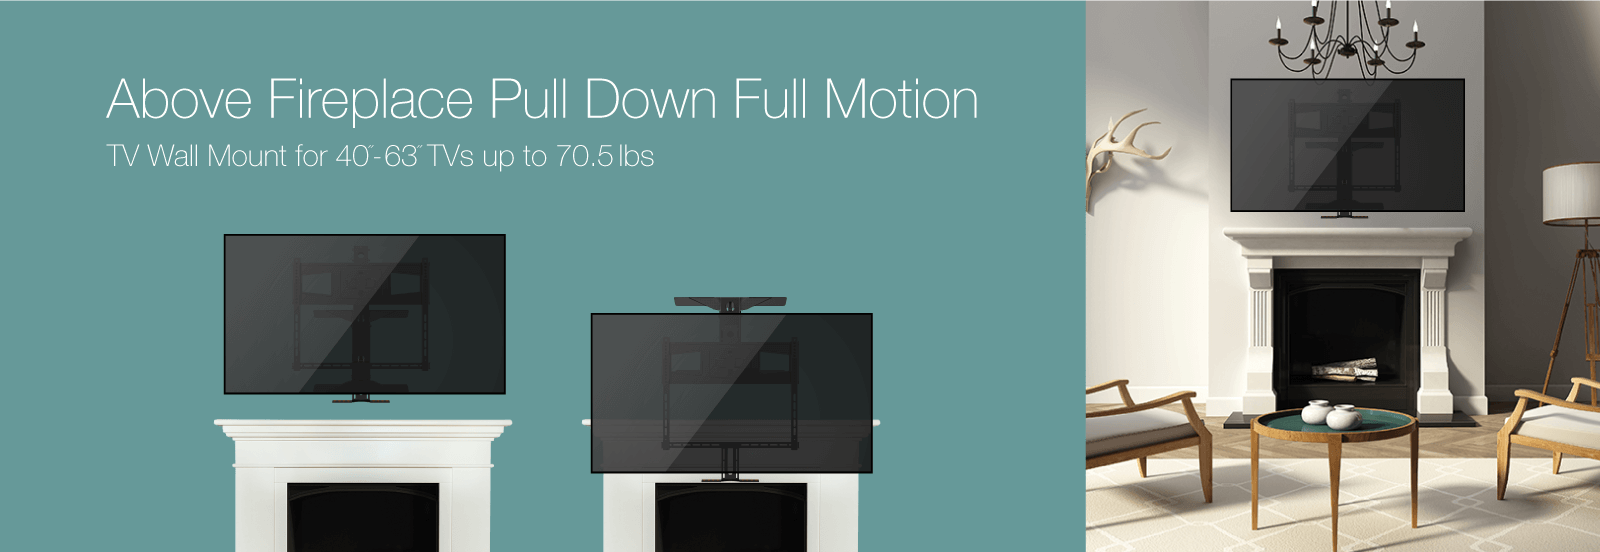 above fireplace pulldown fullmotion tv wall mount